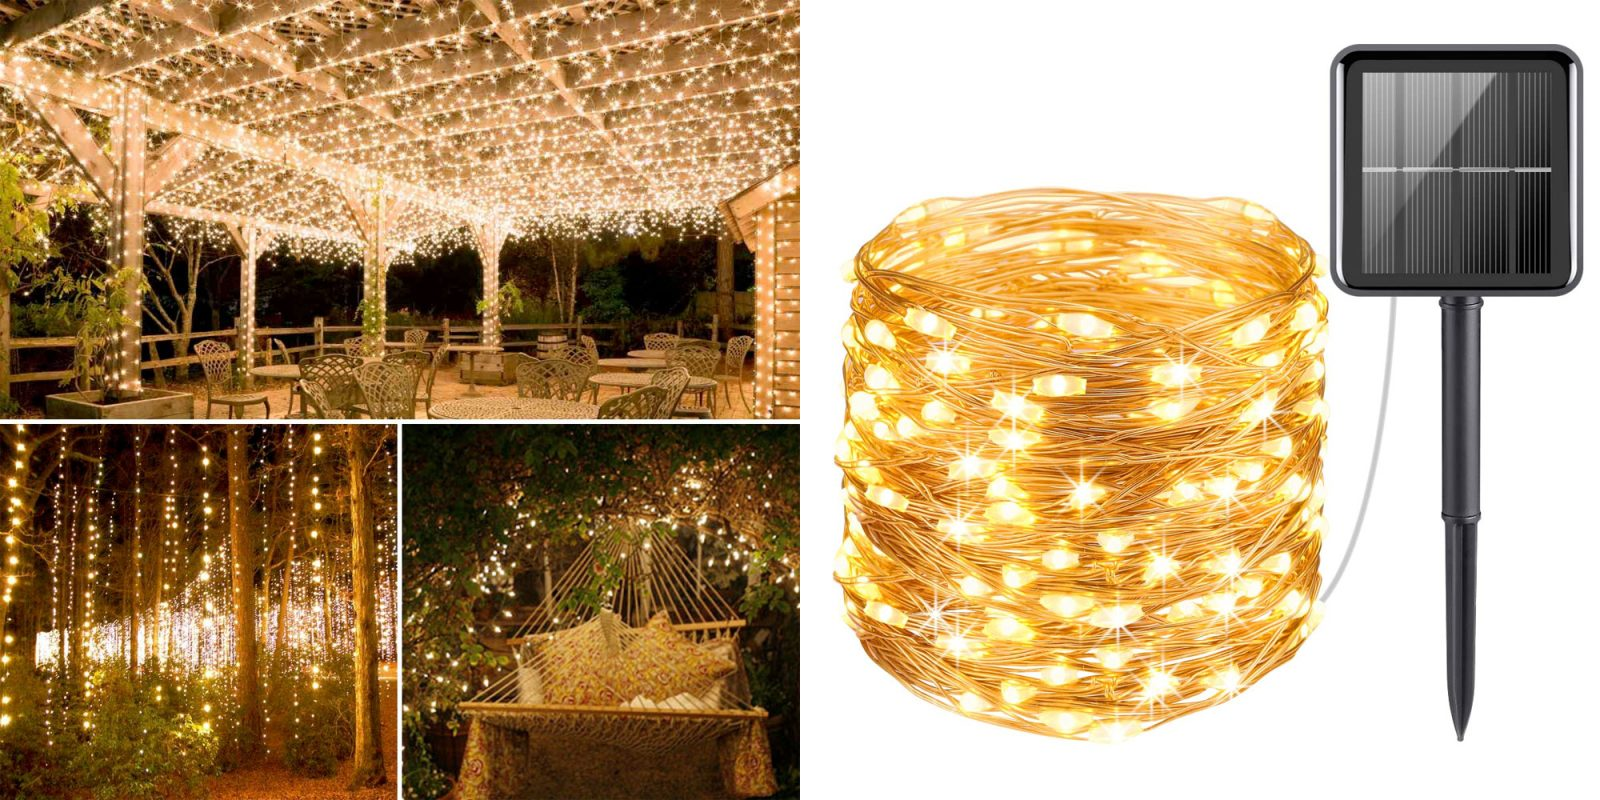 Upgrade your outdoor space w/ this solar powered string light kit for $7